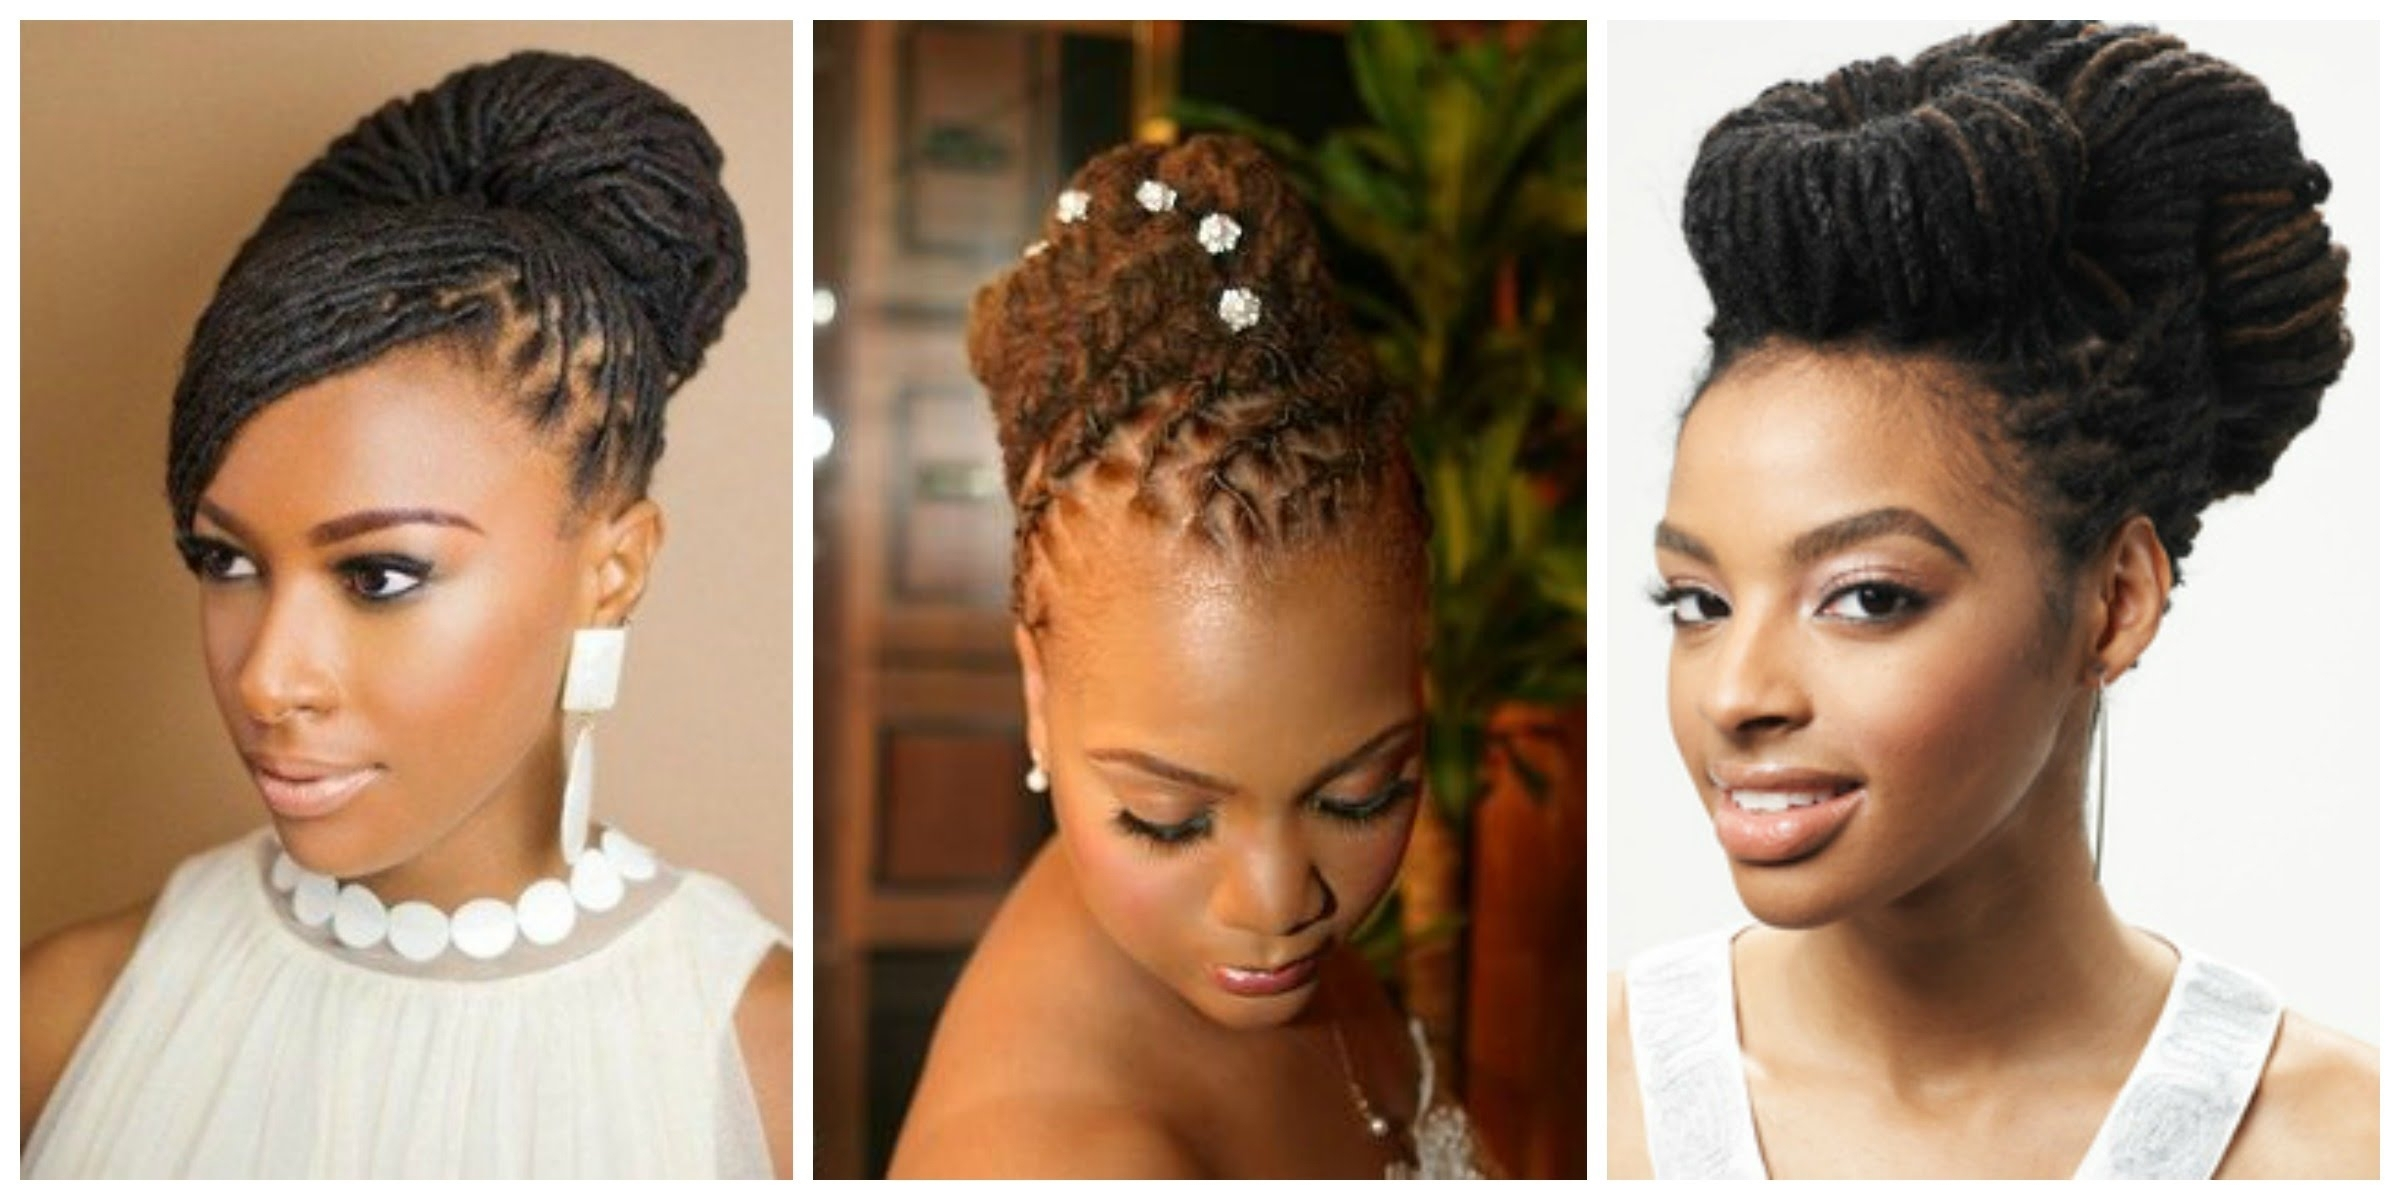 Dreadlocks Updo Hairstyles For Women Loc Updo Hairstyles | Dreadlock Intended For Updo Locs Hairstyles (Gallery 12 of 15)